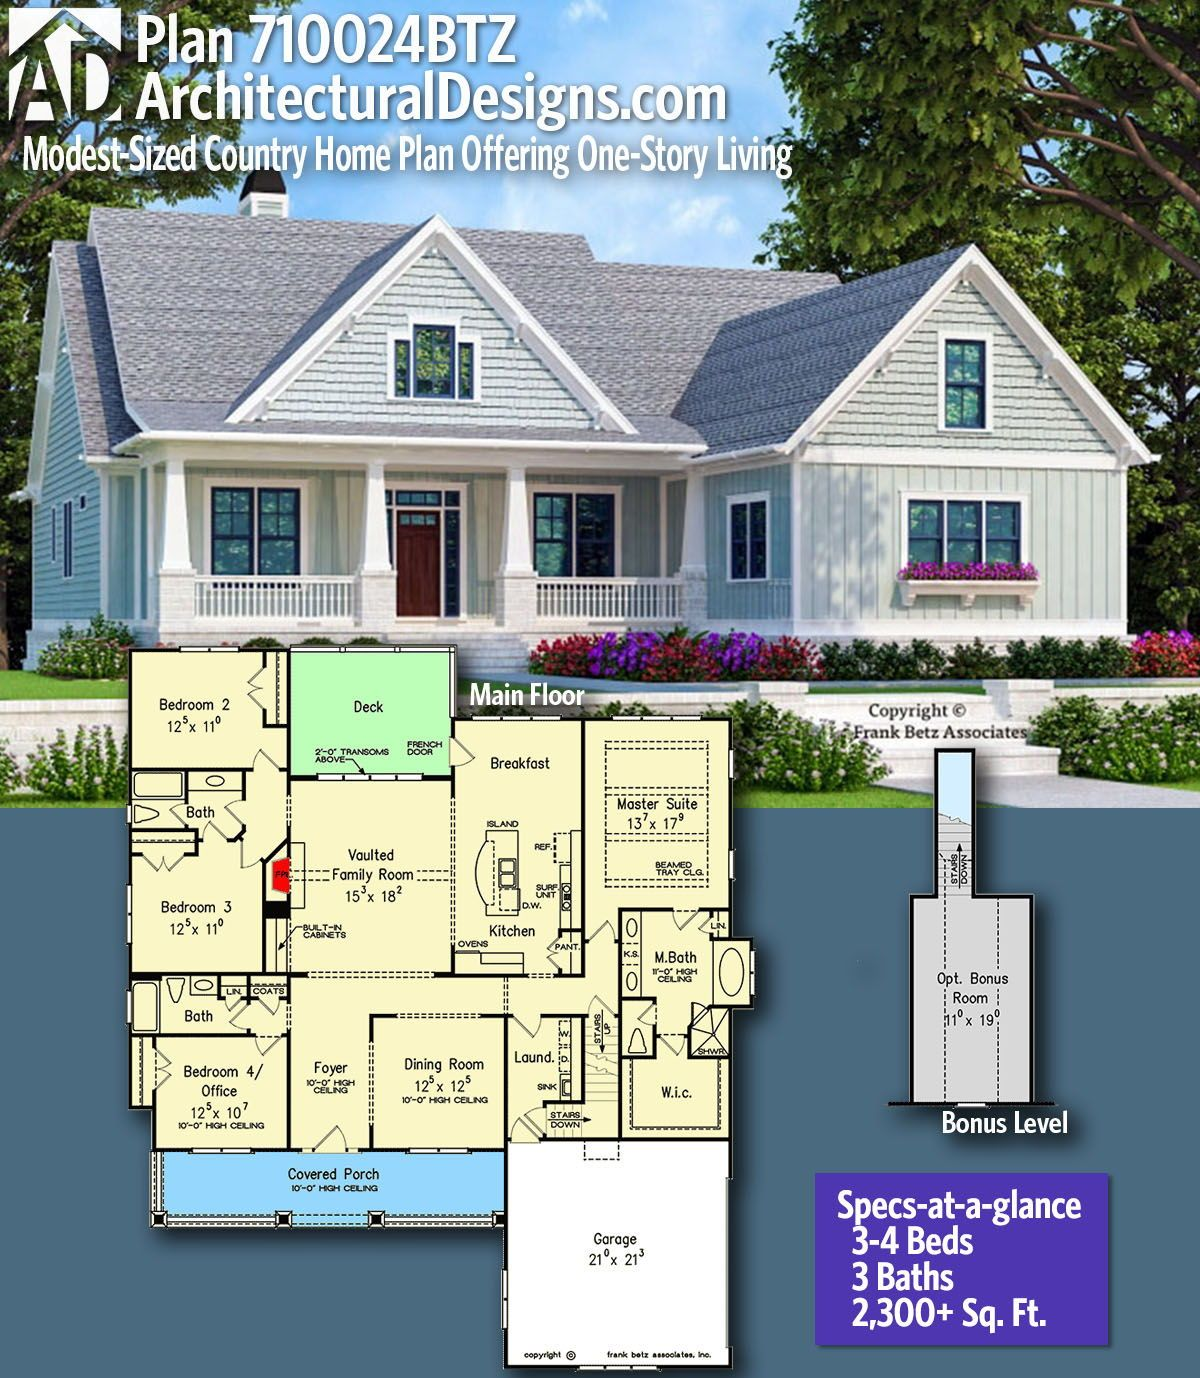 Architectural Designs Home Plan 710024btz Gives You 3 4 Bedrooms 3 Baths And 2 300 Sq Ft Ready When Y Country House Plans House Plans Farmhouse House Plans